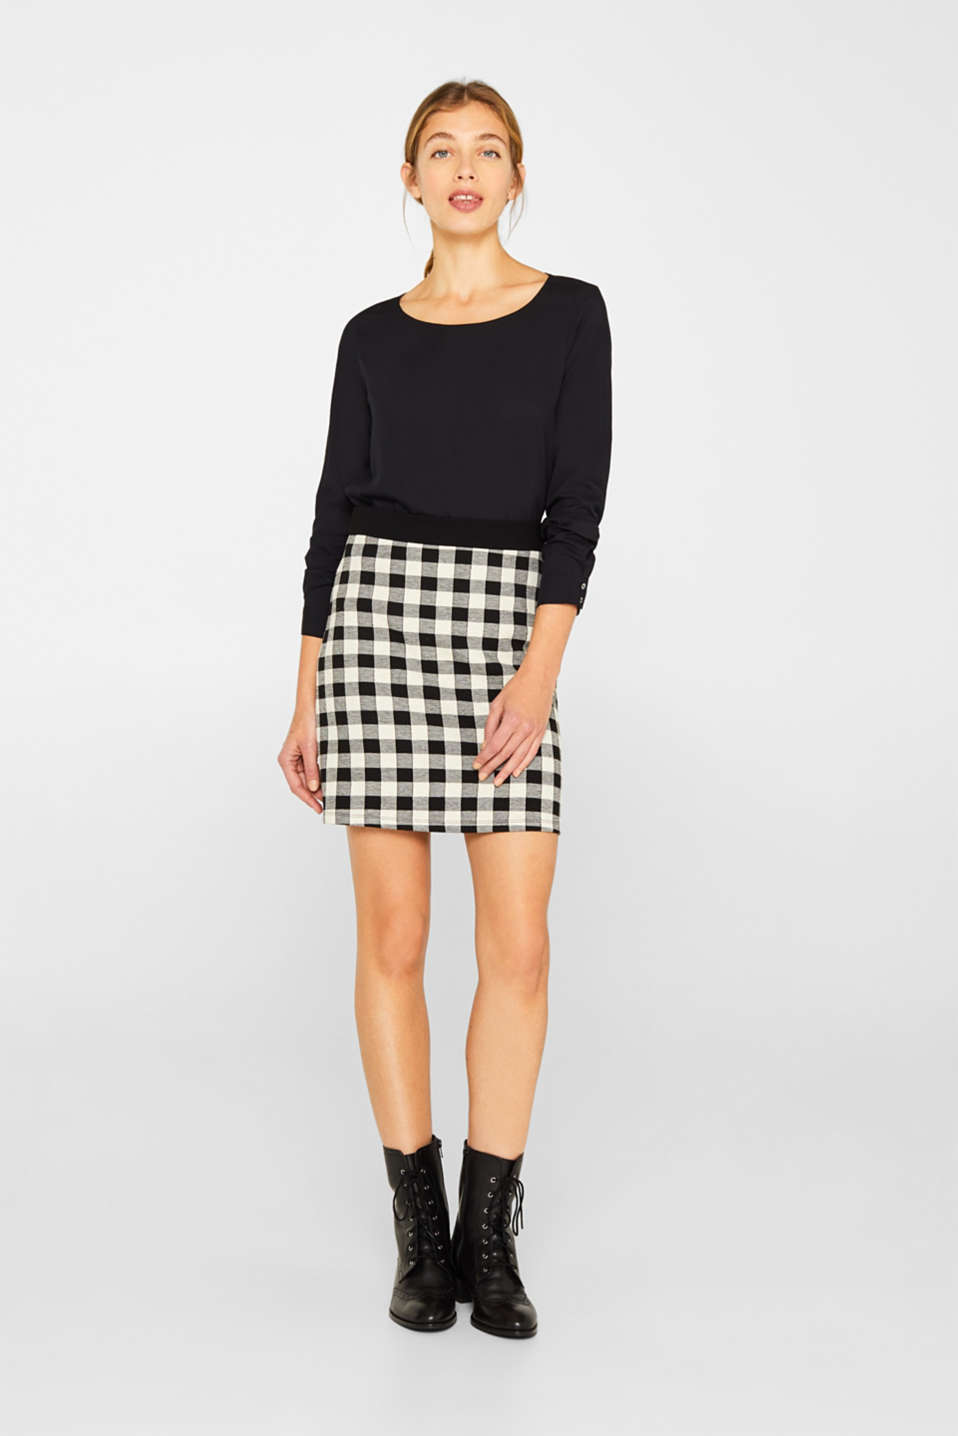 Esprit - Skirt made of textured stretch jersey